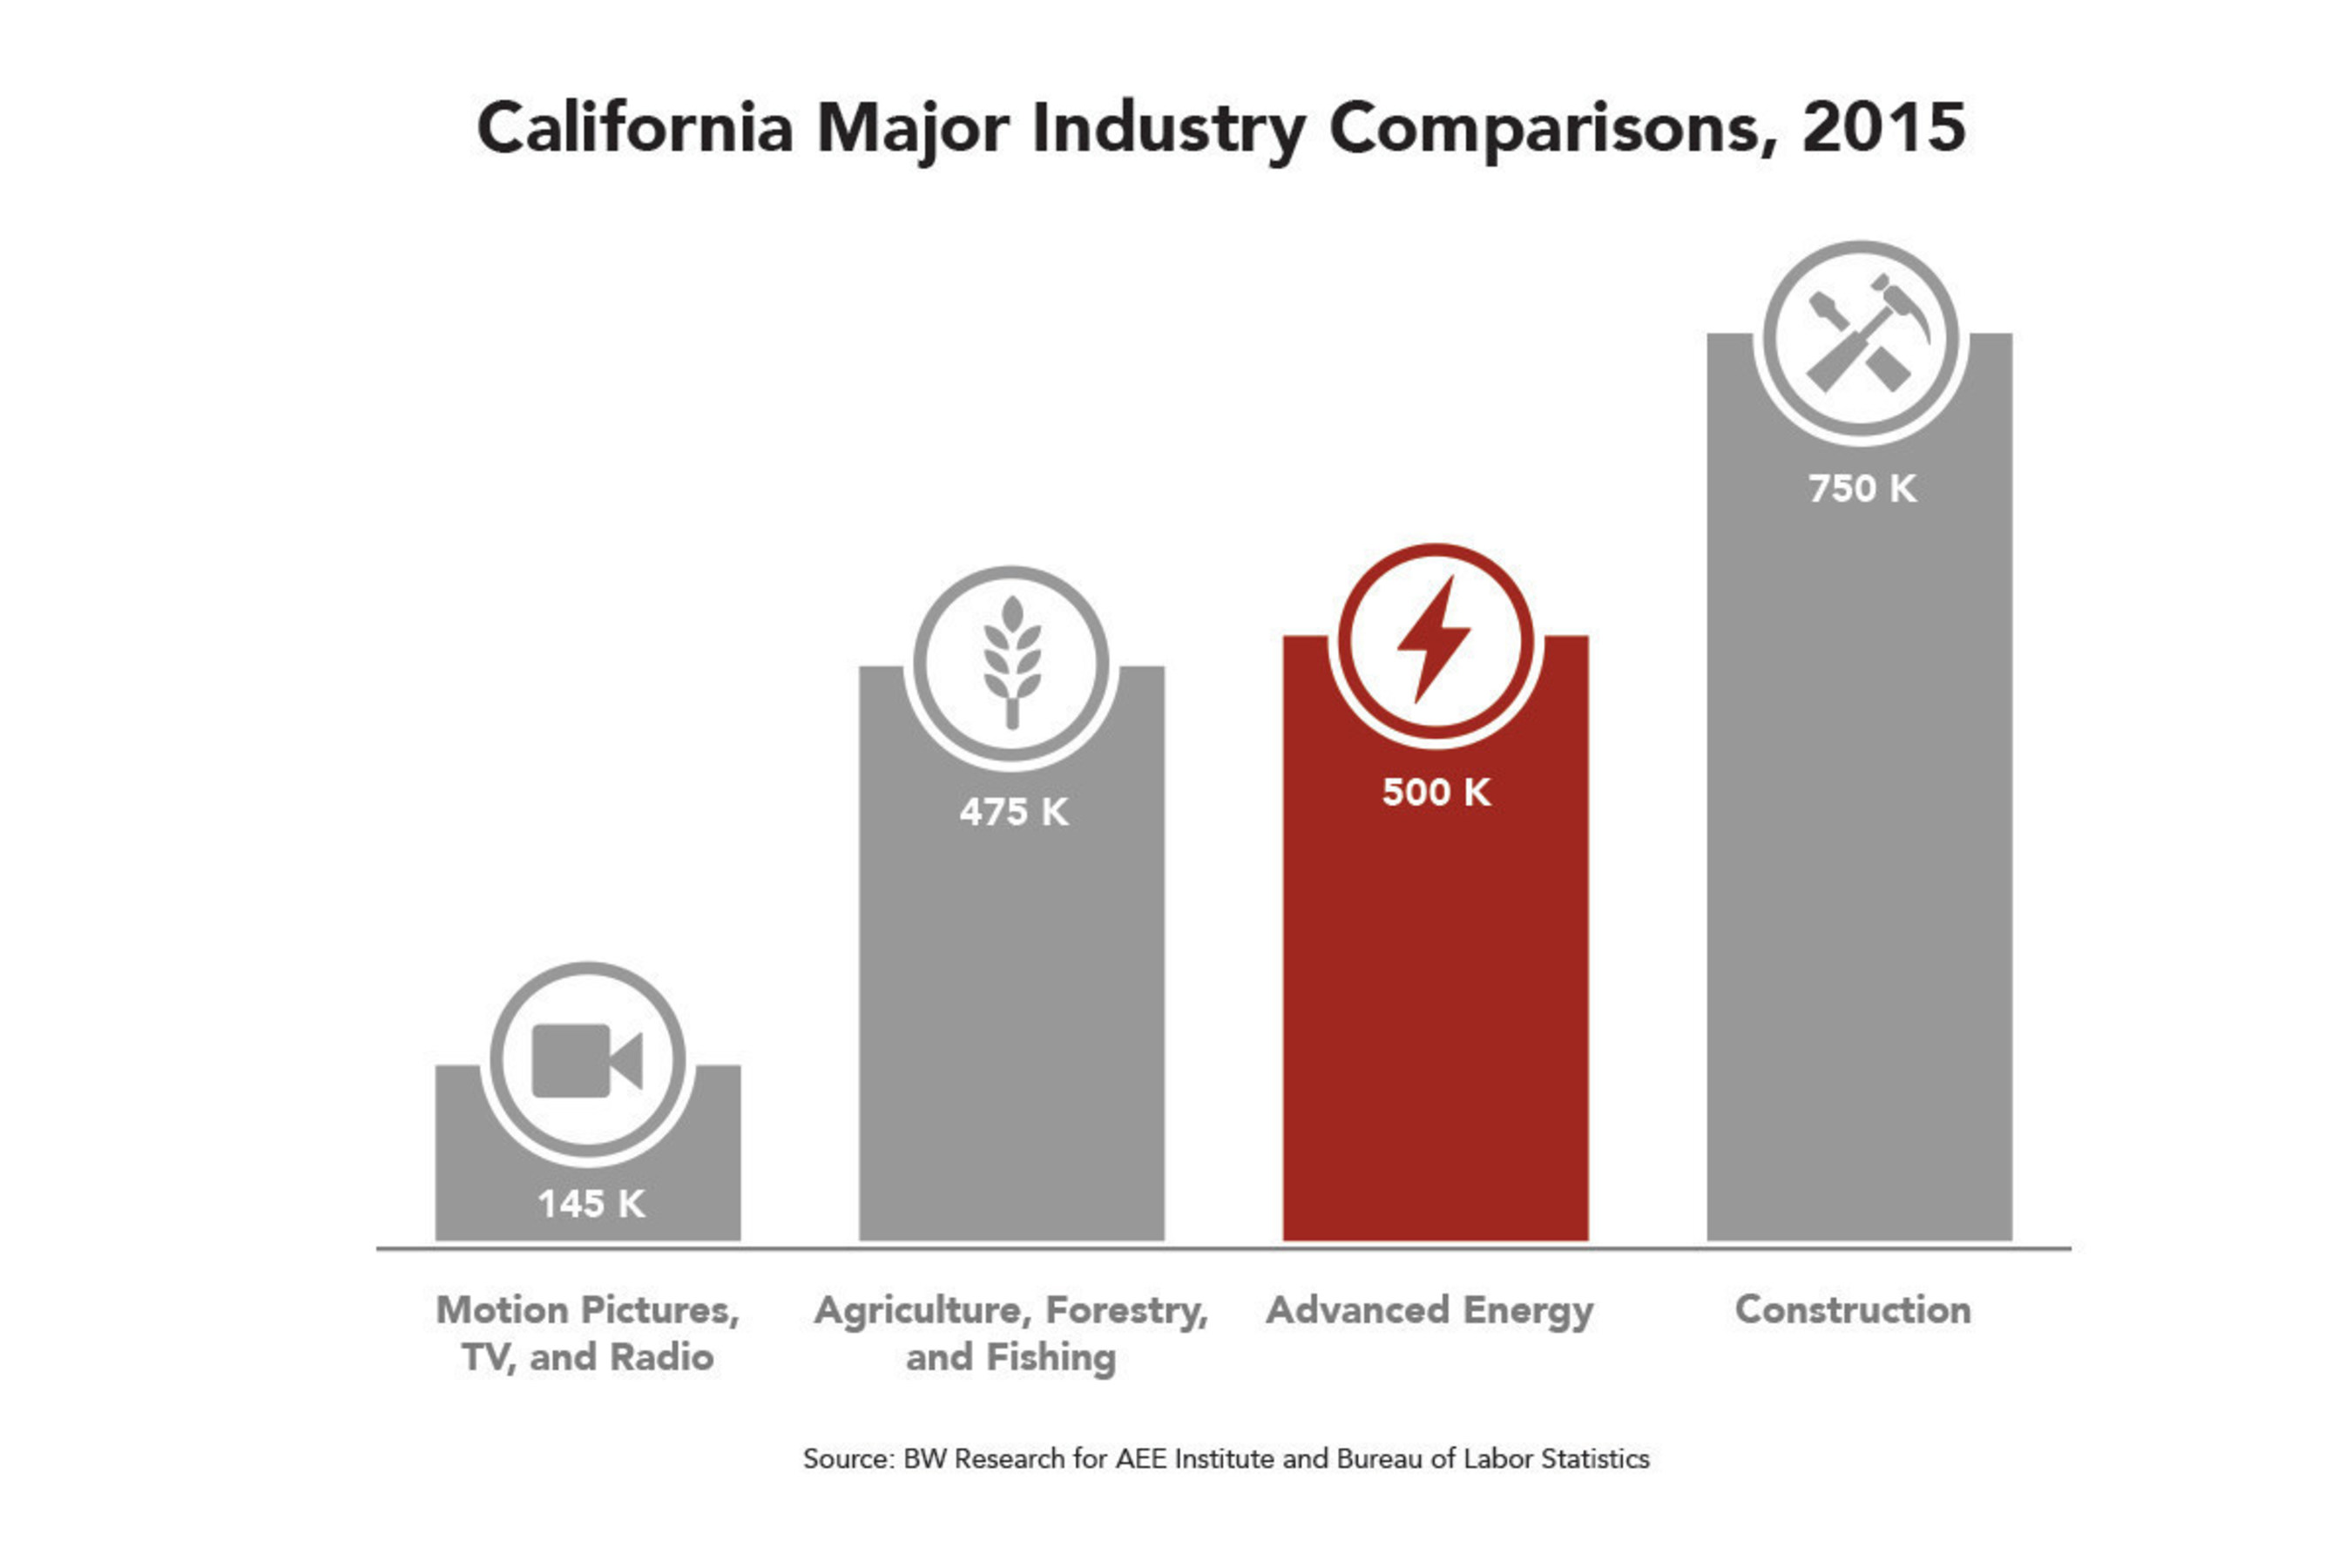 California leads nation with more than half a million advanced energy workers, employs 3X as many Californians as the motion picture, TV, and radio industry (145,000) and more than agriculture, forestry, and fishing (475,000).